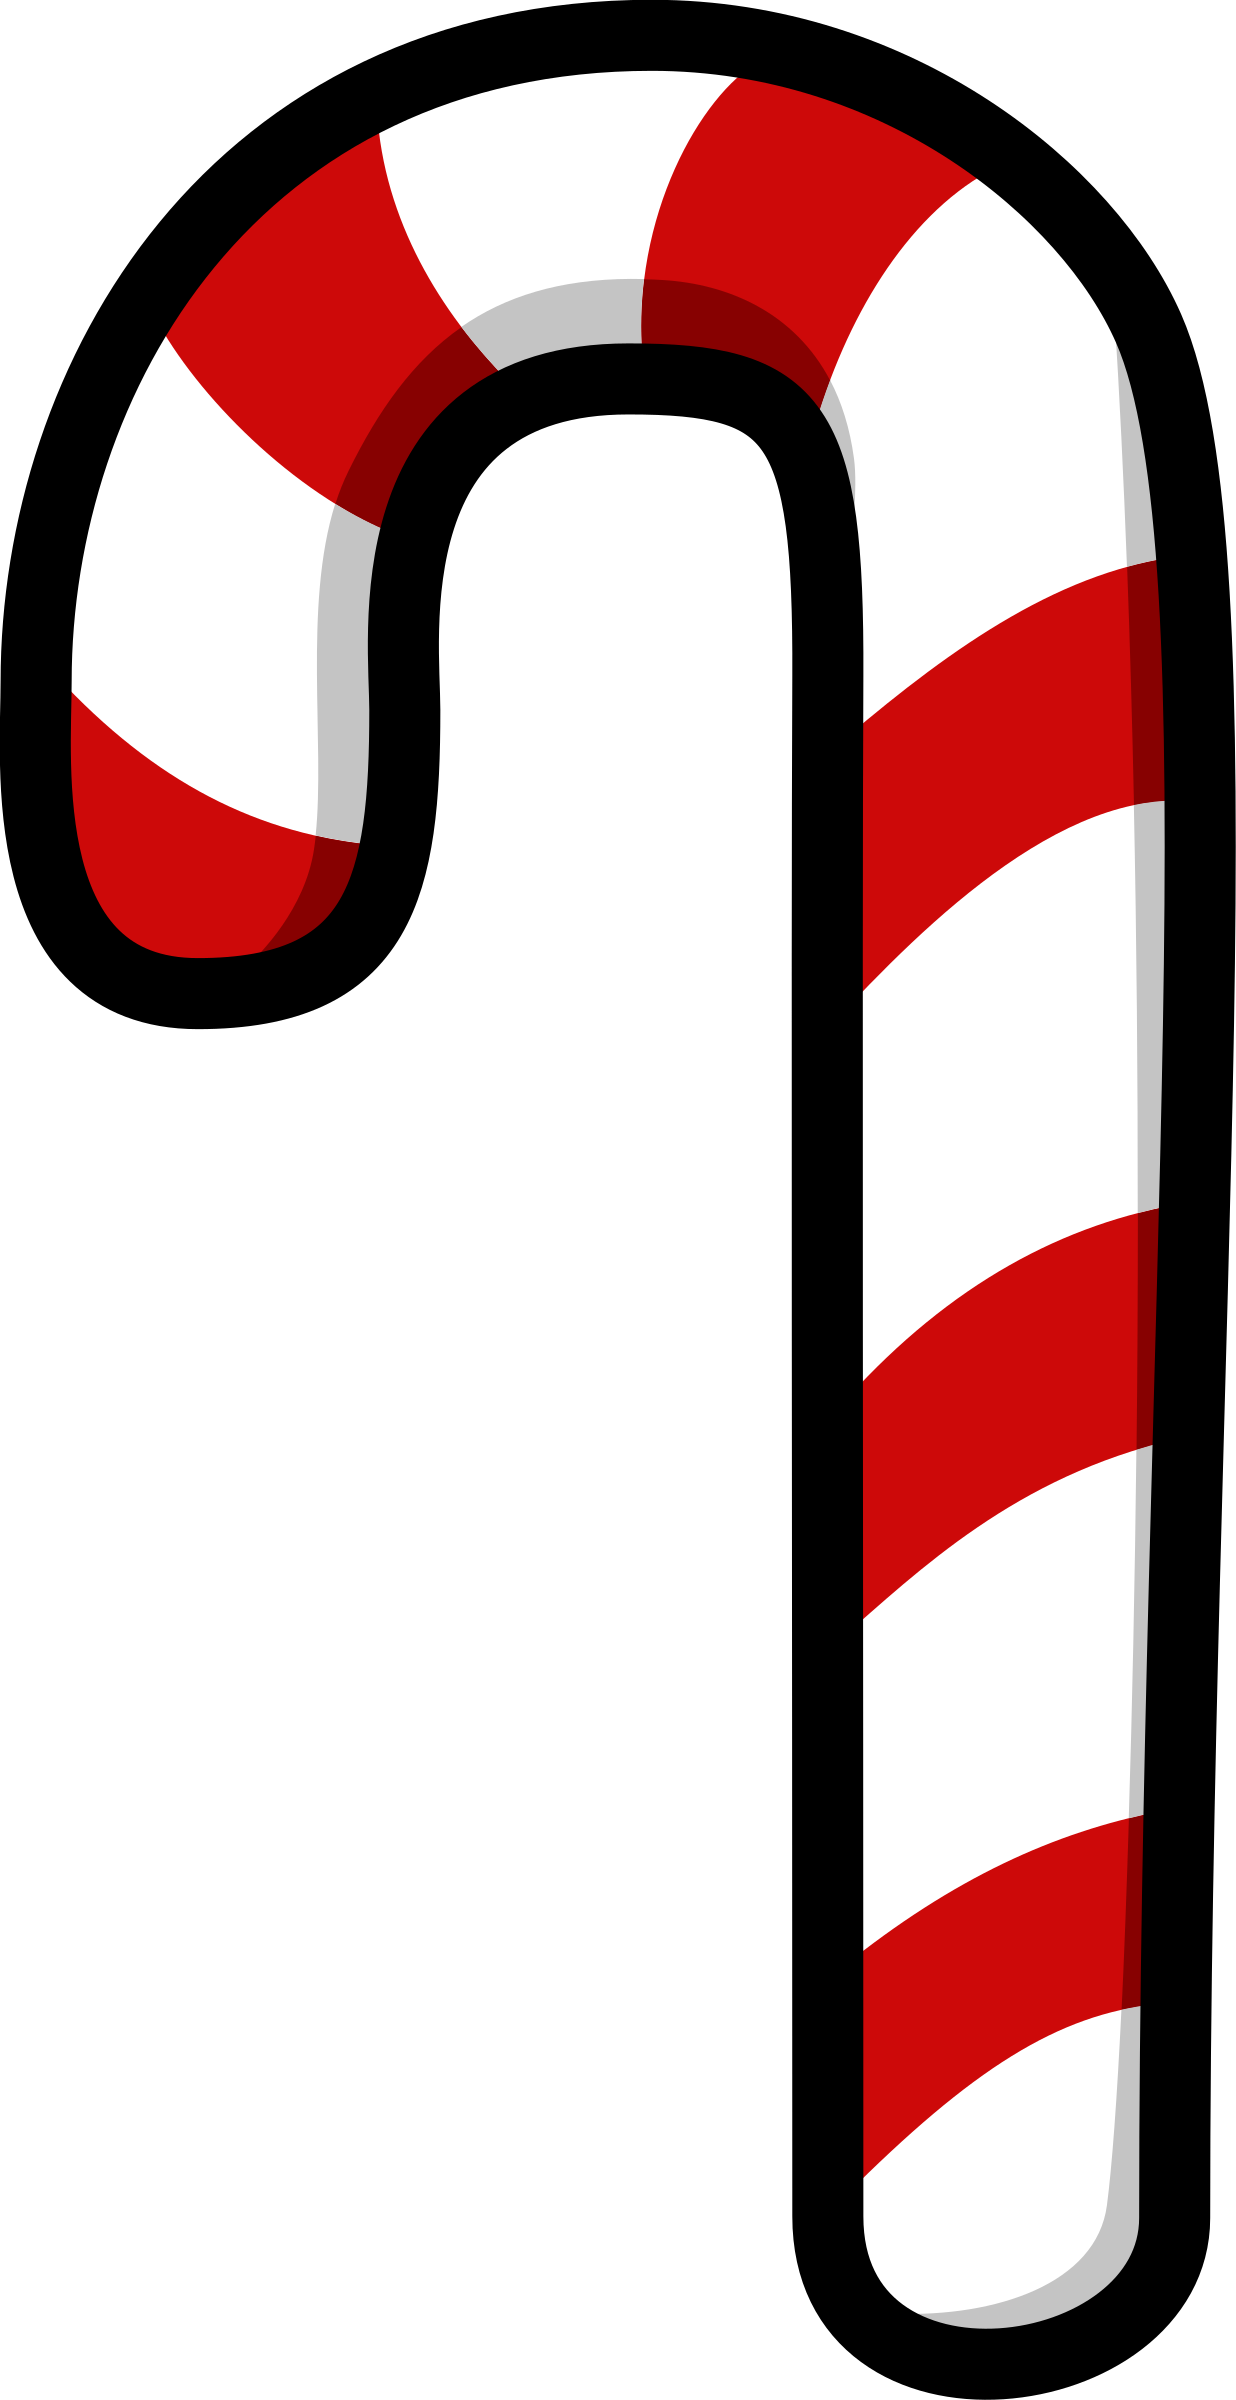 Number clipart candy cane Candy Candy Clipart Cane Cane